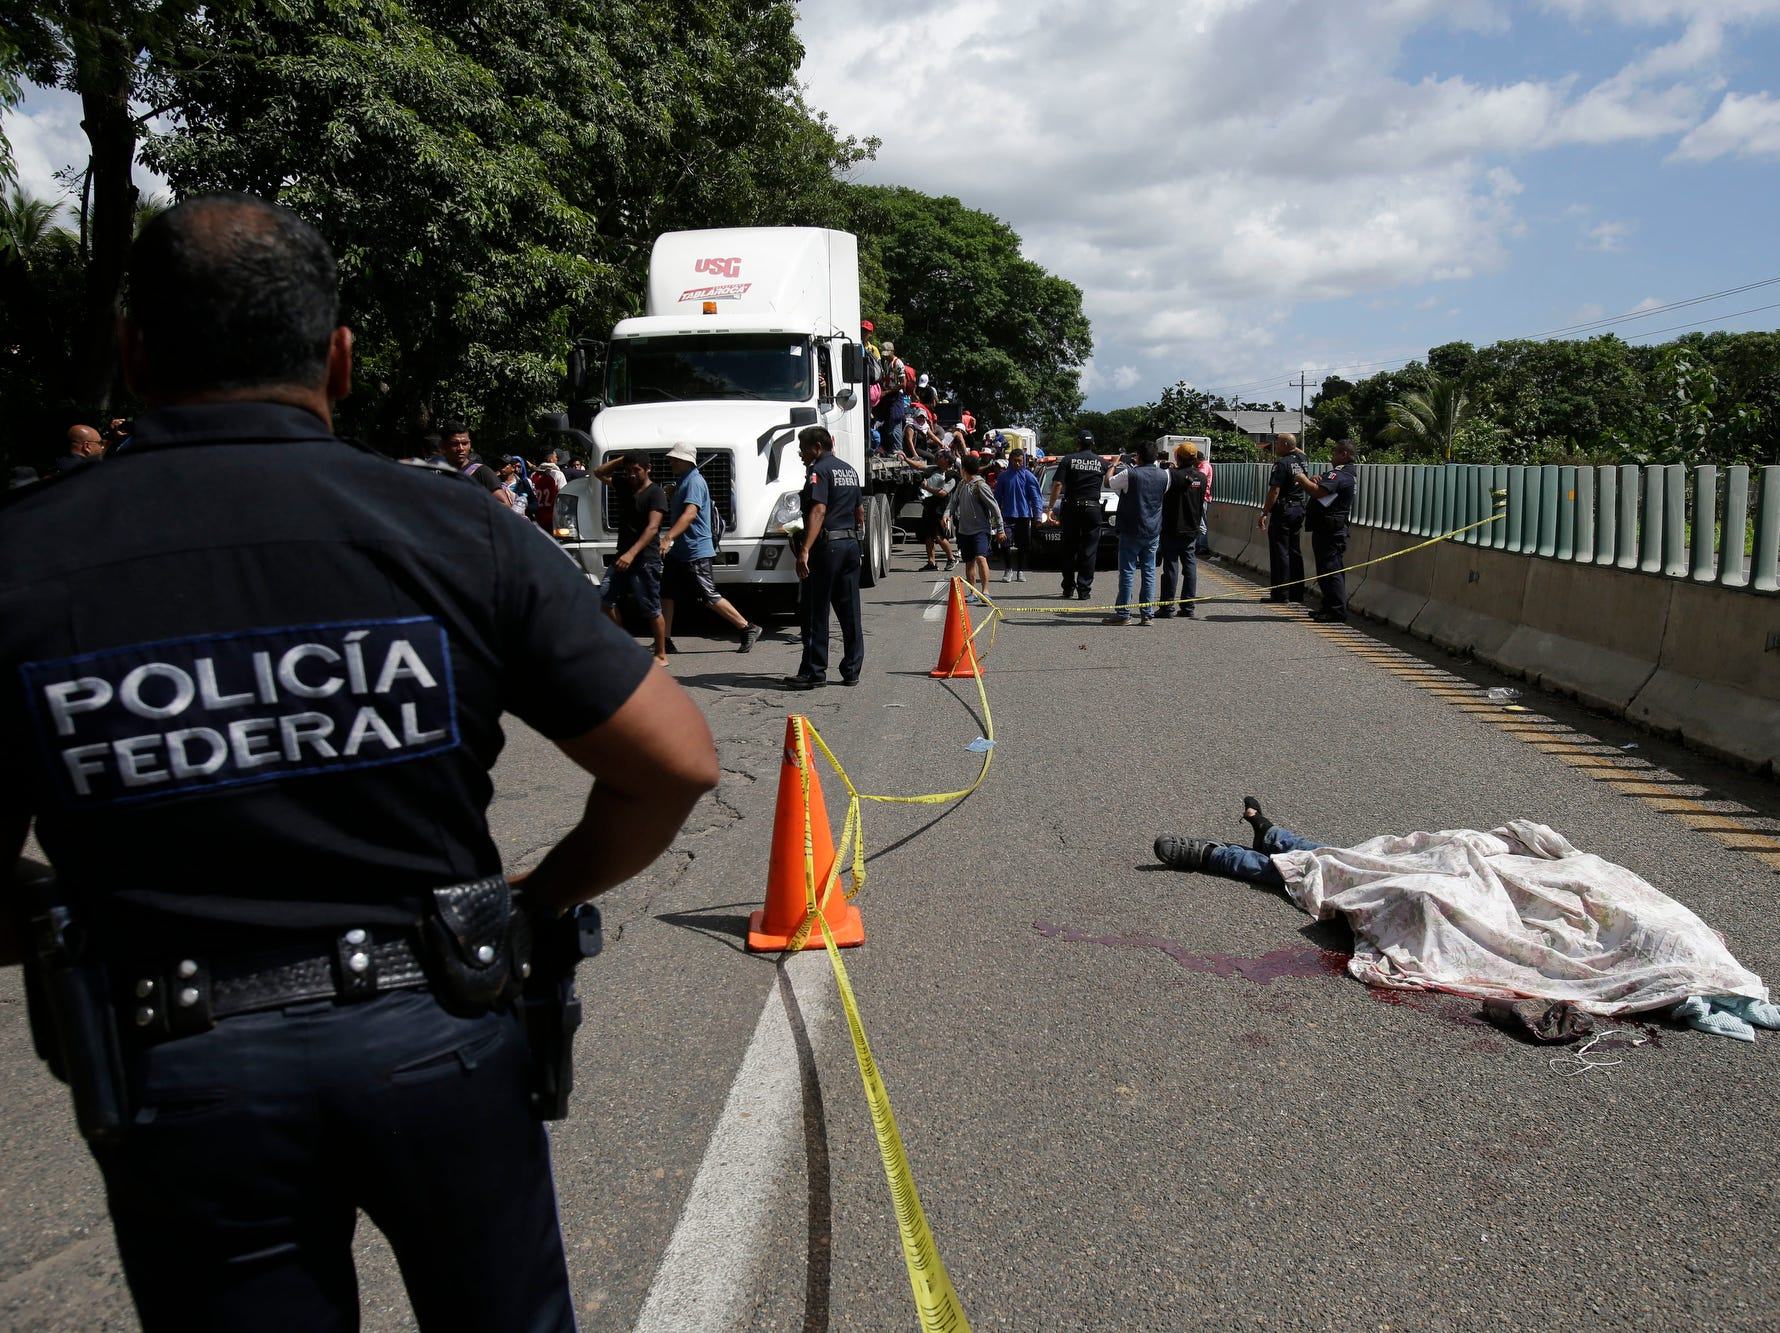 A Central American migrant, who fell from the back of a moving vehicle and died, lies on a highway covered by a sheet outside of Tapachula, Mexico, Monday. Motorists in pickups and other vehicles have been offering the Central American migrants rides, often in overloaded truck beds, as the group of about 7,000 people heads to the U.S. border.